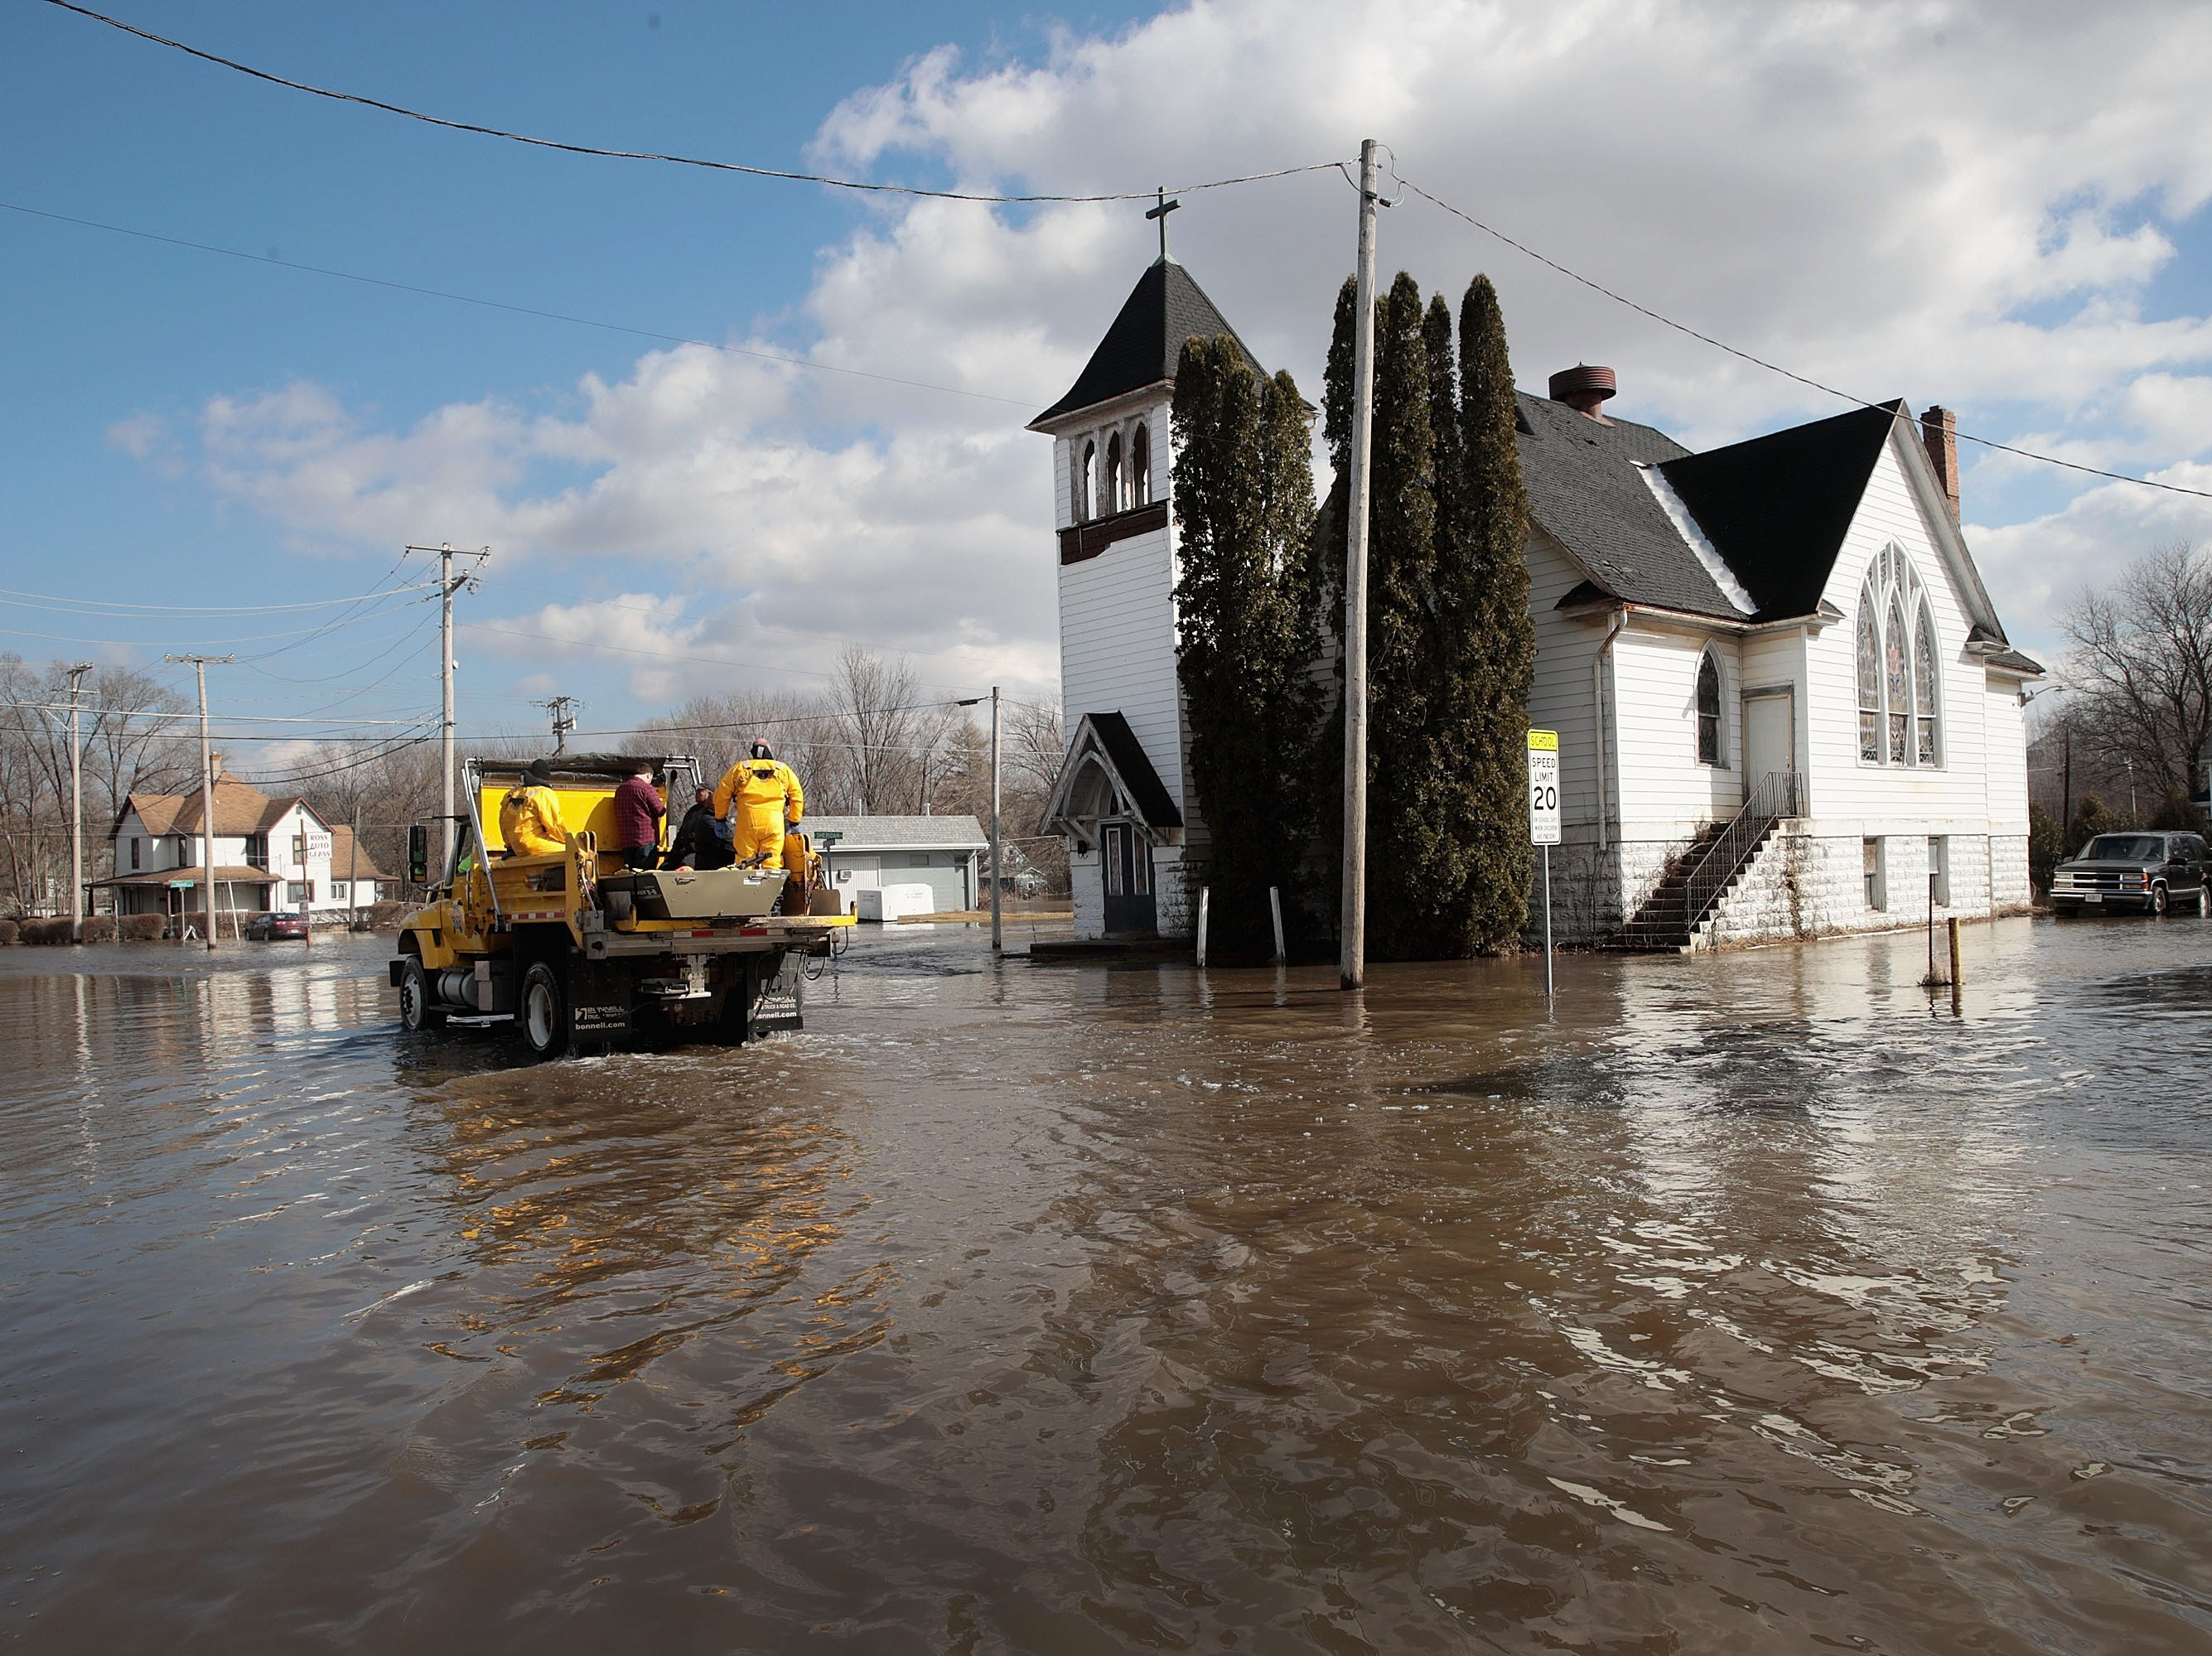 A church is surrounded by floodwater from the Pecatonica River on March 18, 2019, in Freeport, Ill.